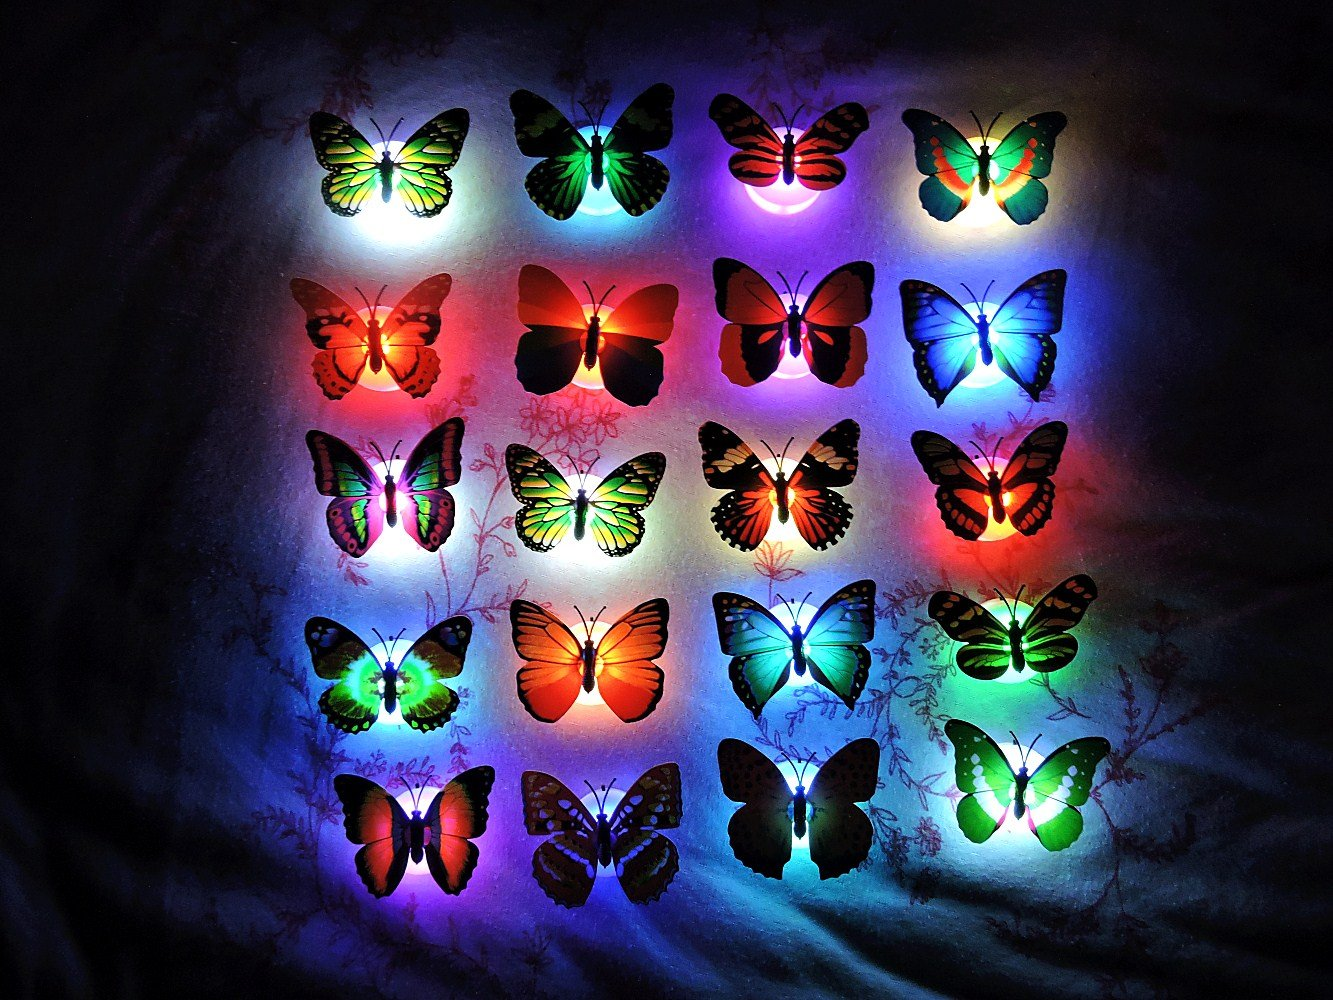 Hosyl Romantic Magic Color Changing LED Butterfly Decorative Light,Stick On Butterfly Wall Light, Battery Operated LED Night Light For Xmas Festive Garden Home Party, Pack Of 10